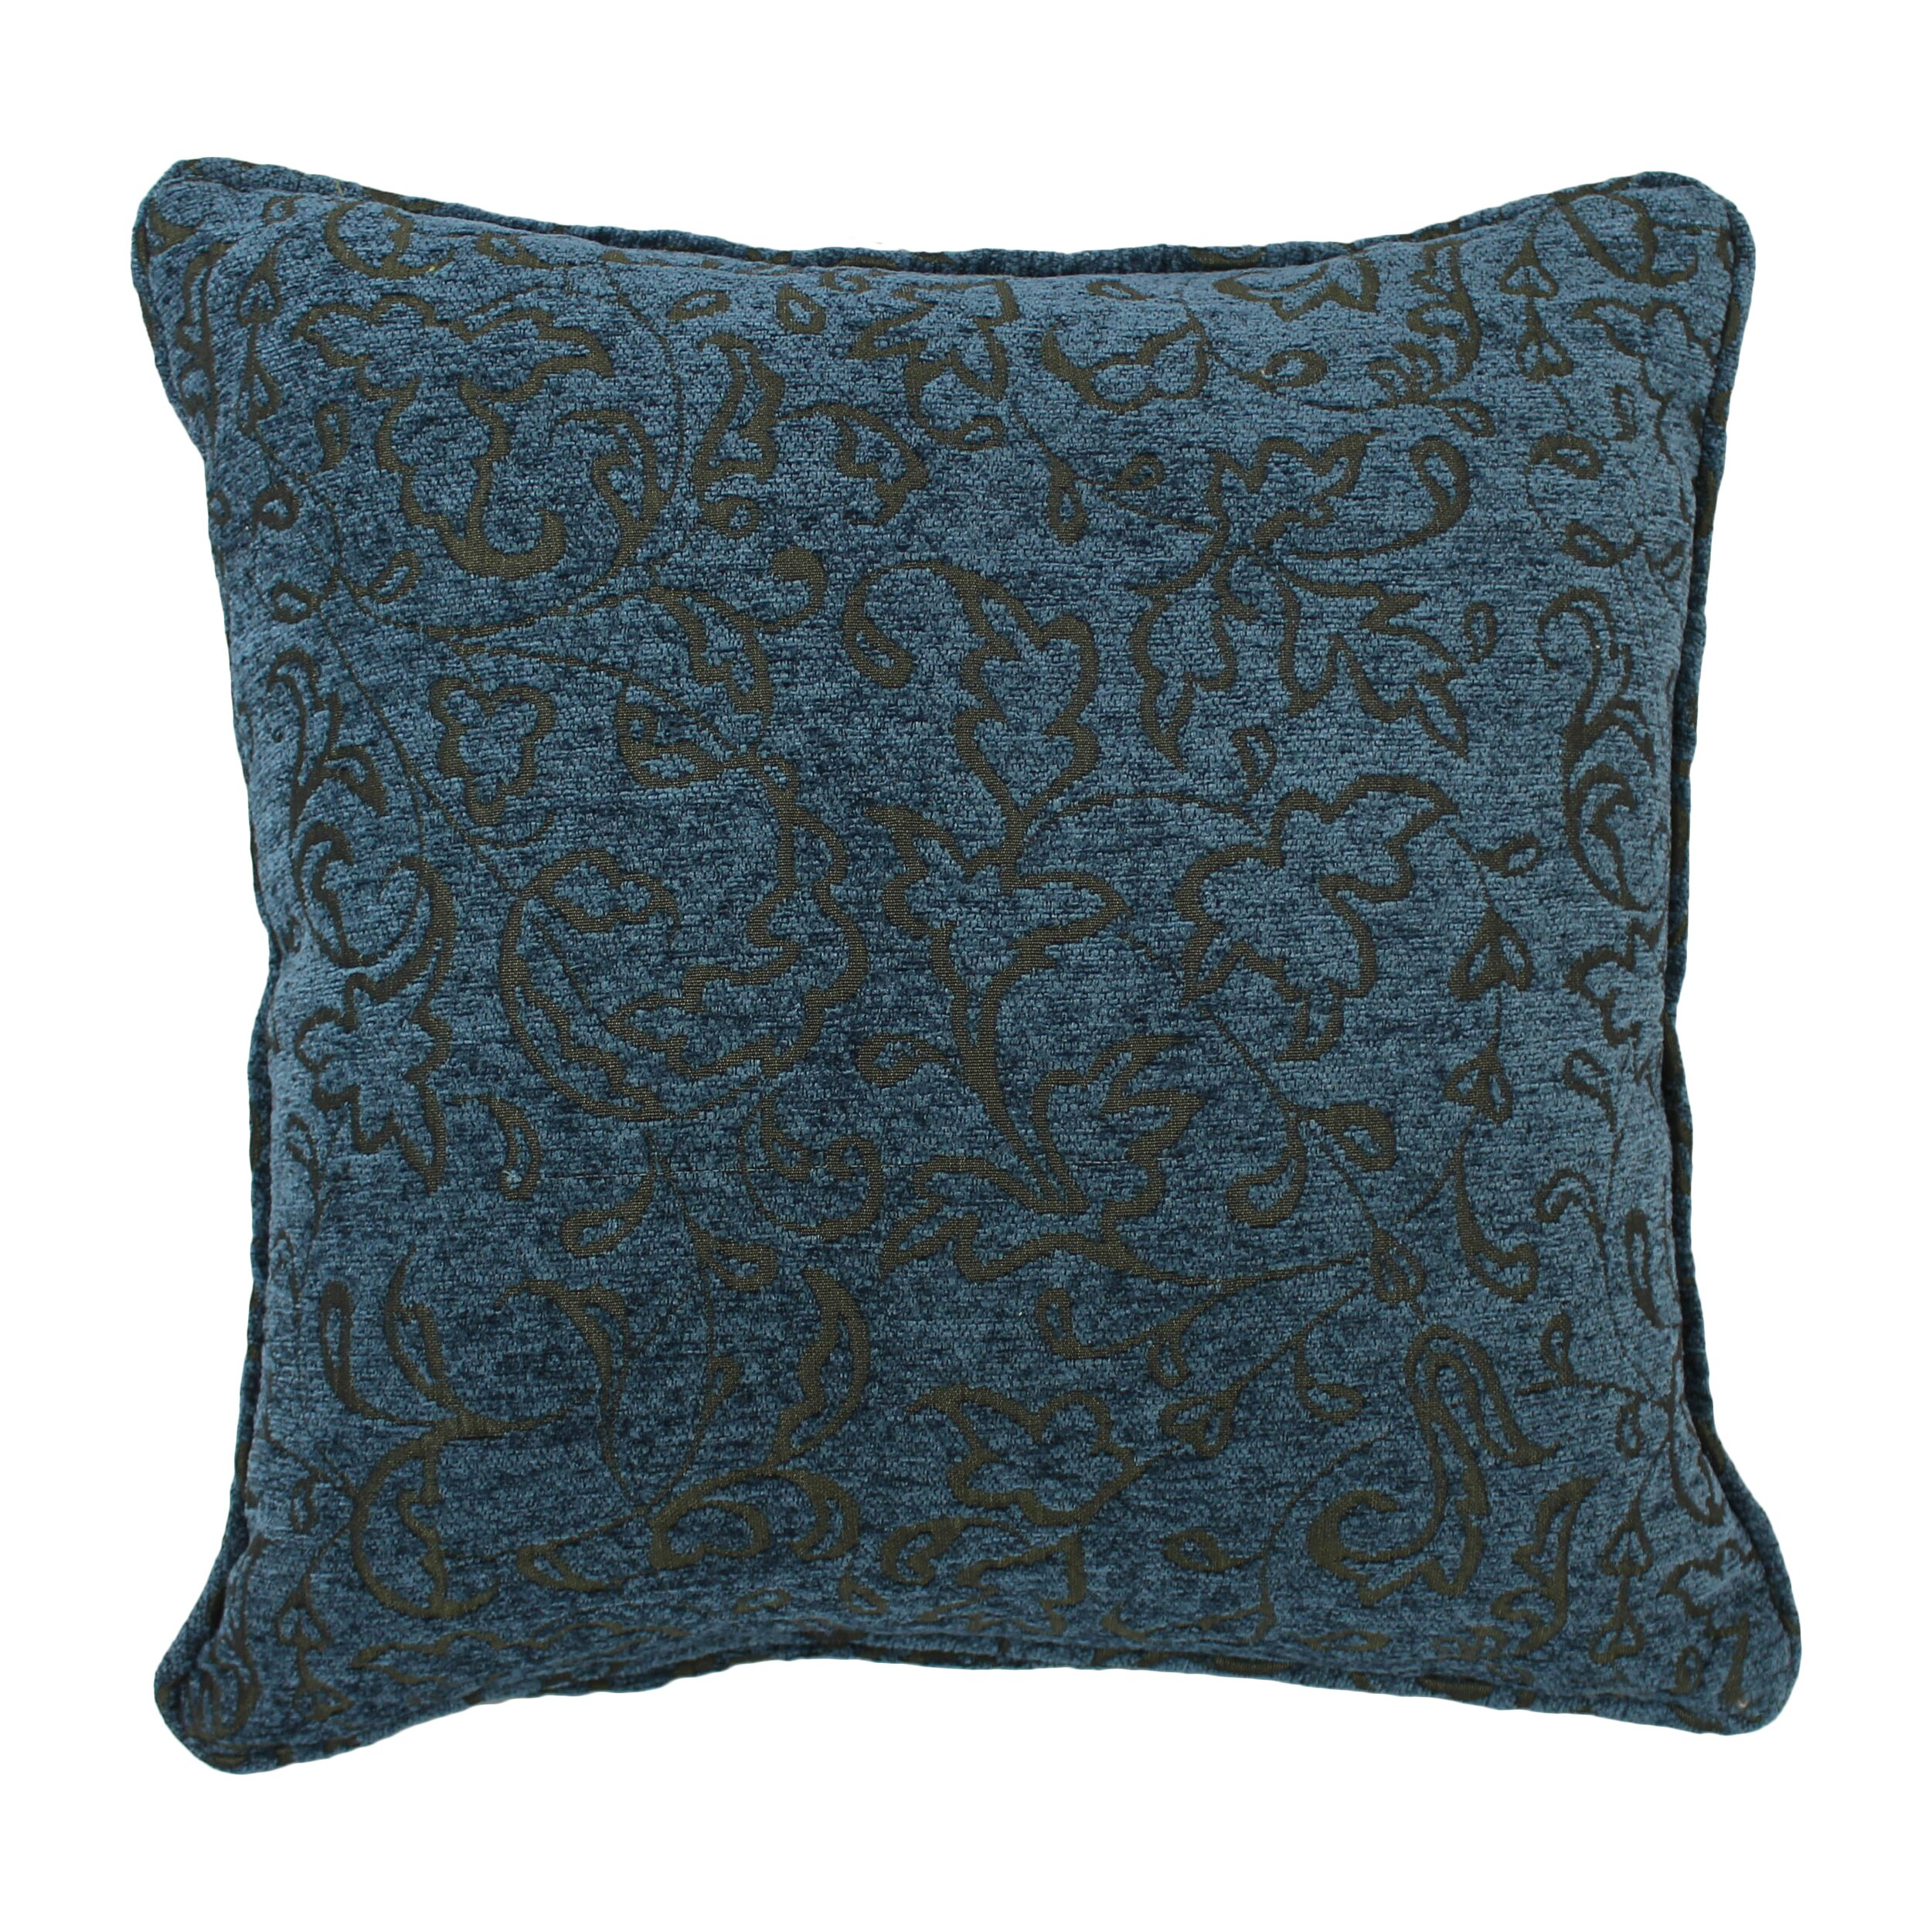 Jacquard Throw Pillows : Blazing Needles 18-inch Corded Blue Floral Jacquard Chenille Throw Pillow & Reviews Wayfair